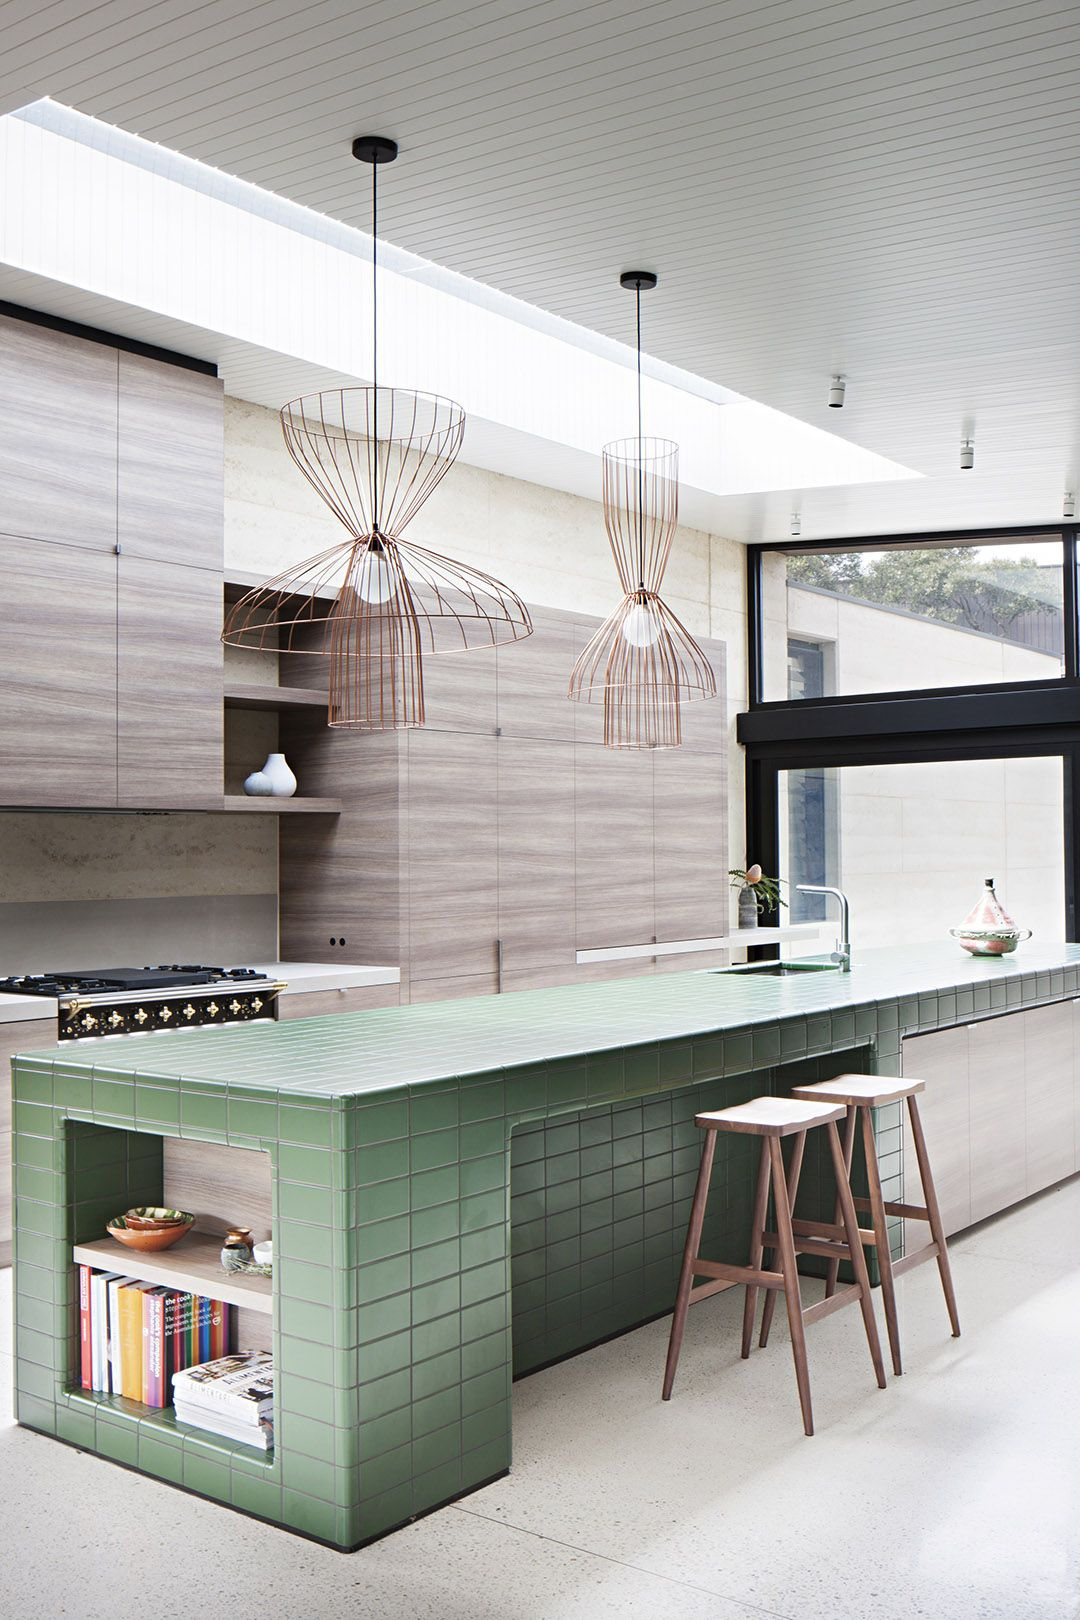 Inspiring Family Home With A Green Tiled Kitchen | Küchenblock ...